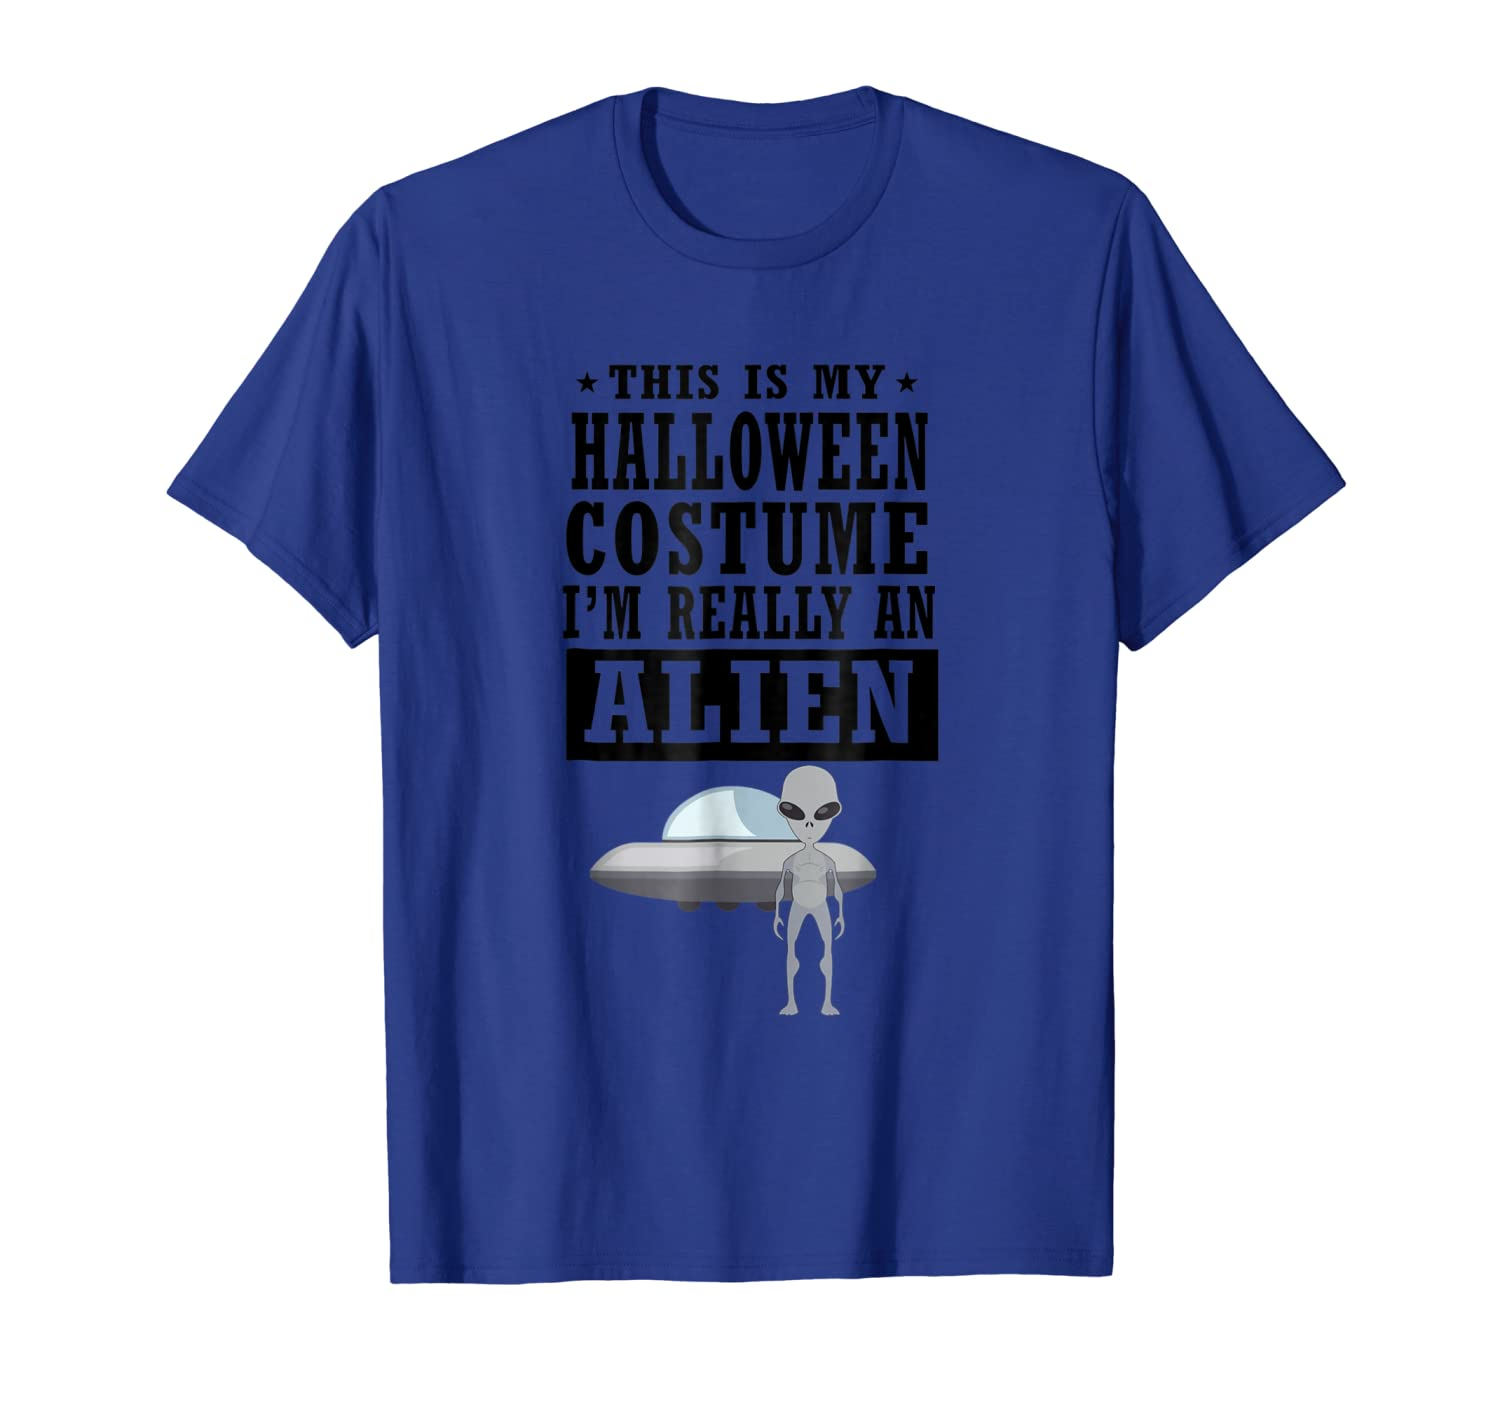 Space Alien Halloween Costume T-shirt - This Is My Costume